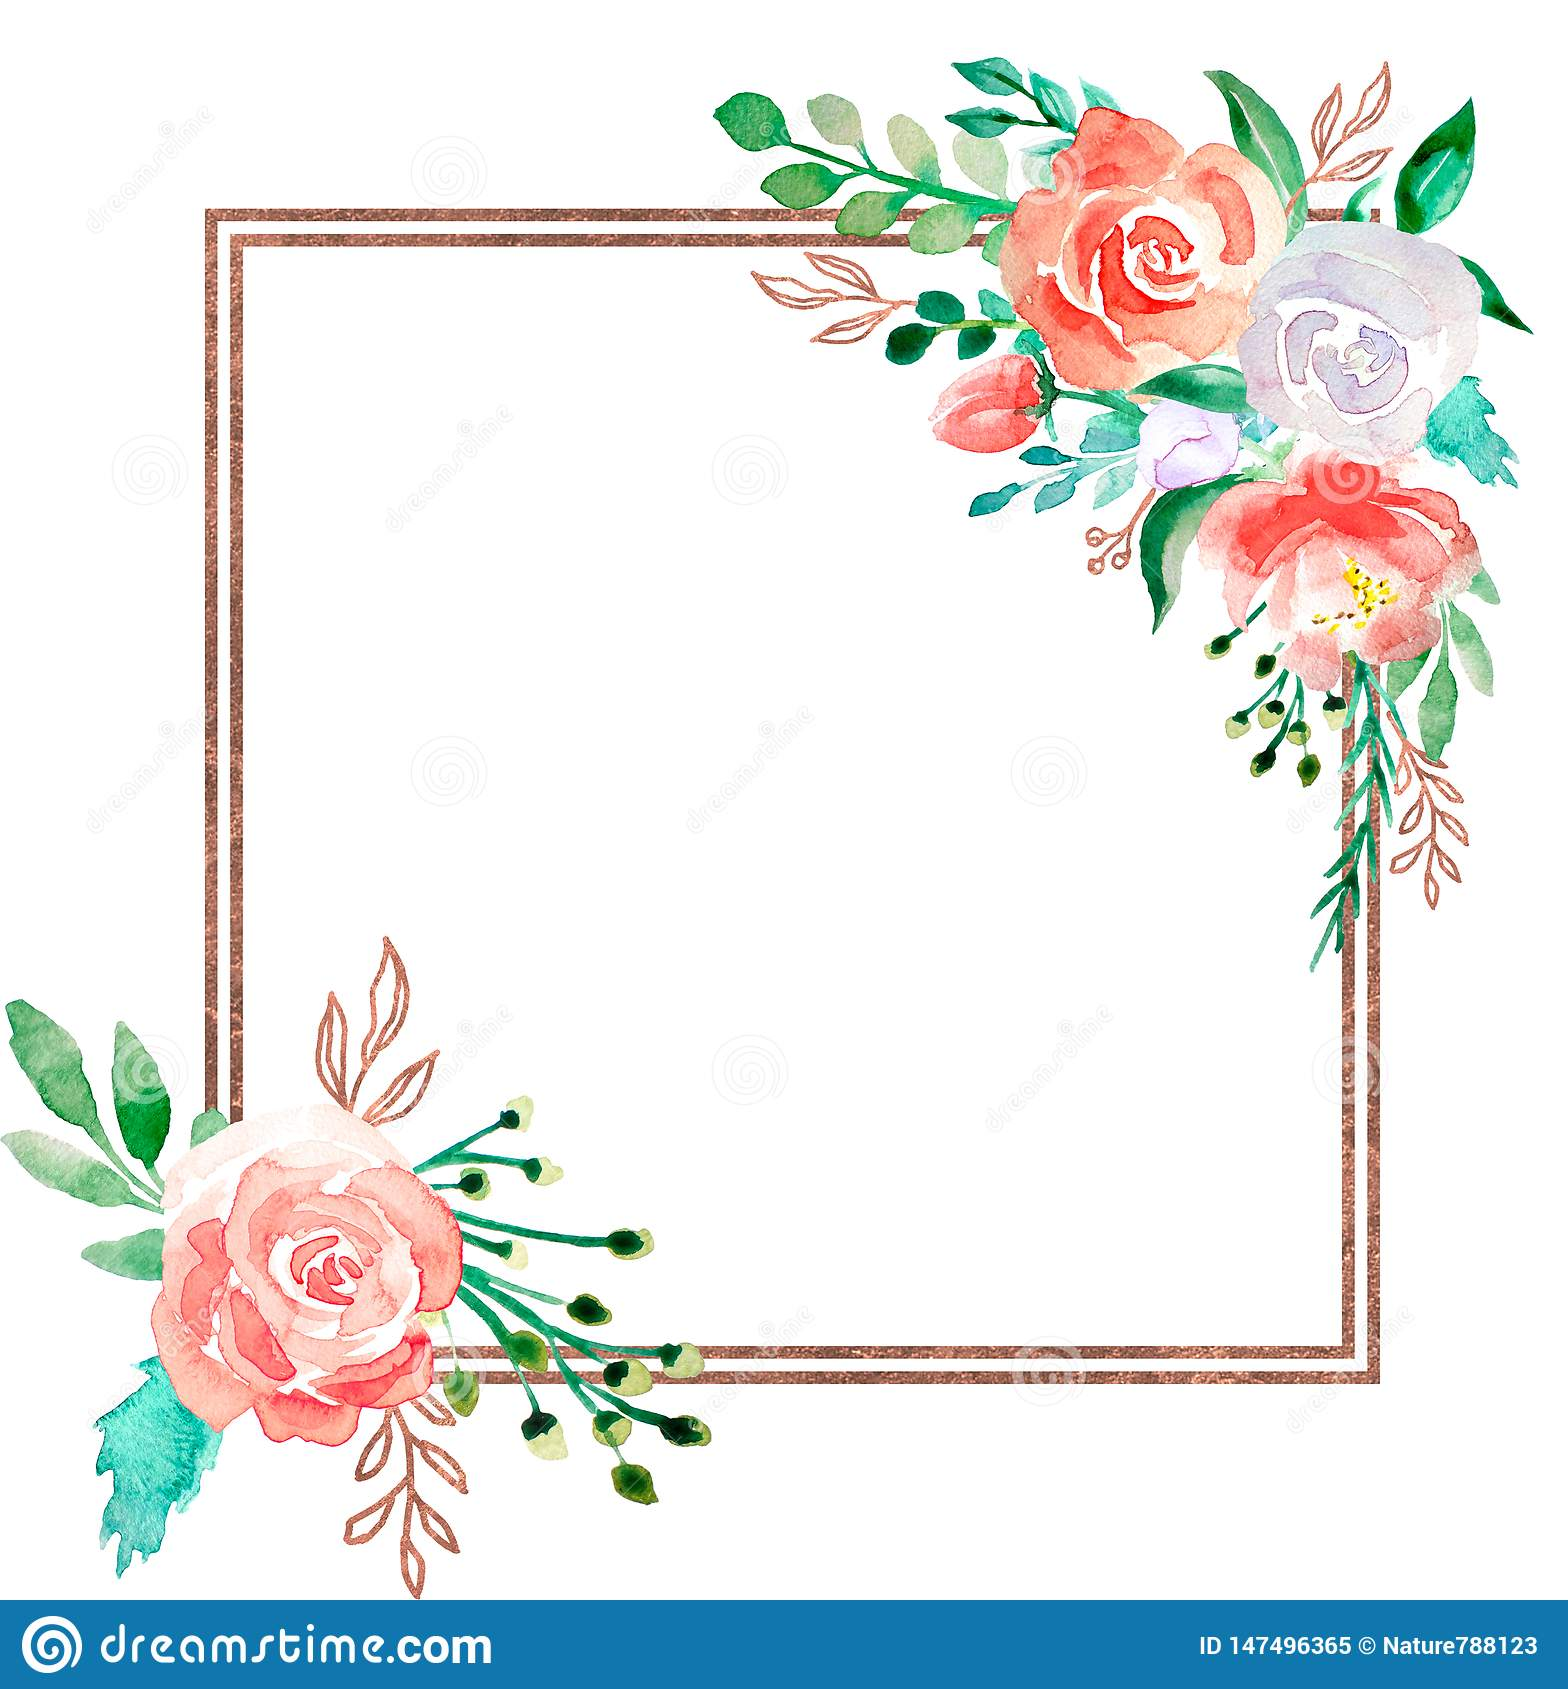 Wedding Flower Borders: Watercolor Floral Frame With Golden Bronze Border